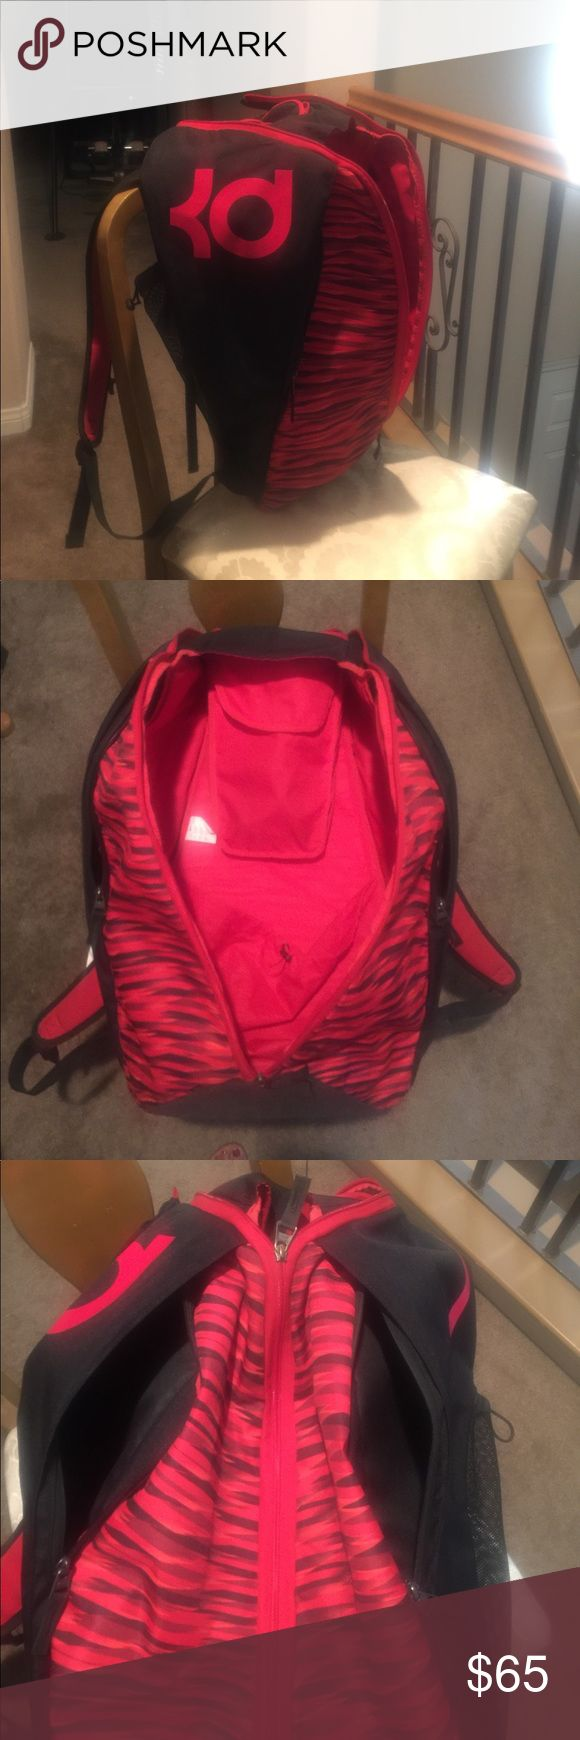 Backpack🎒 Red Nike Kd basketball🏀 backpack. With thermal compartment, two compartments on inside. Water bottle pockets on each side. 2 zipper pockets in front also. In last picture shows where my son had his name but used sharpe to black out, other than that in pristine condition. Nike Bags Backpacks